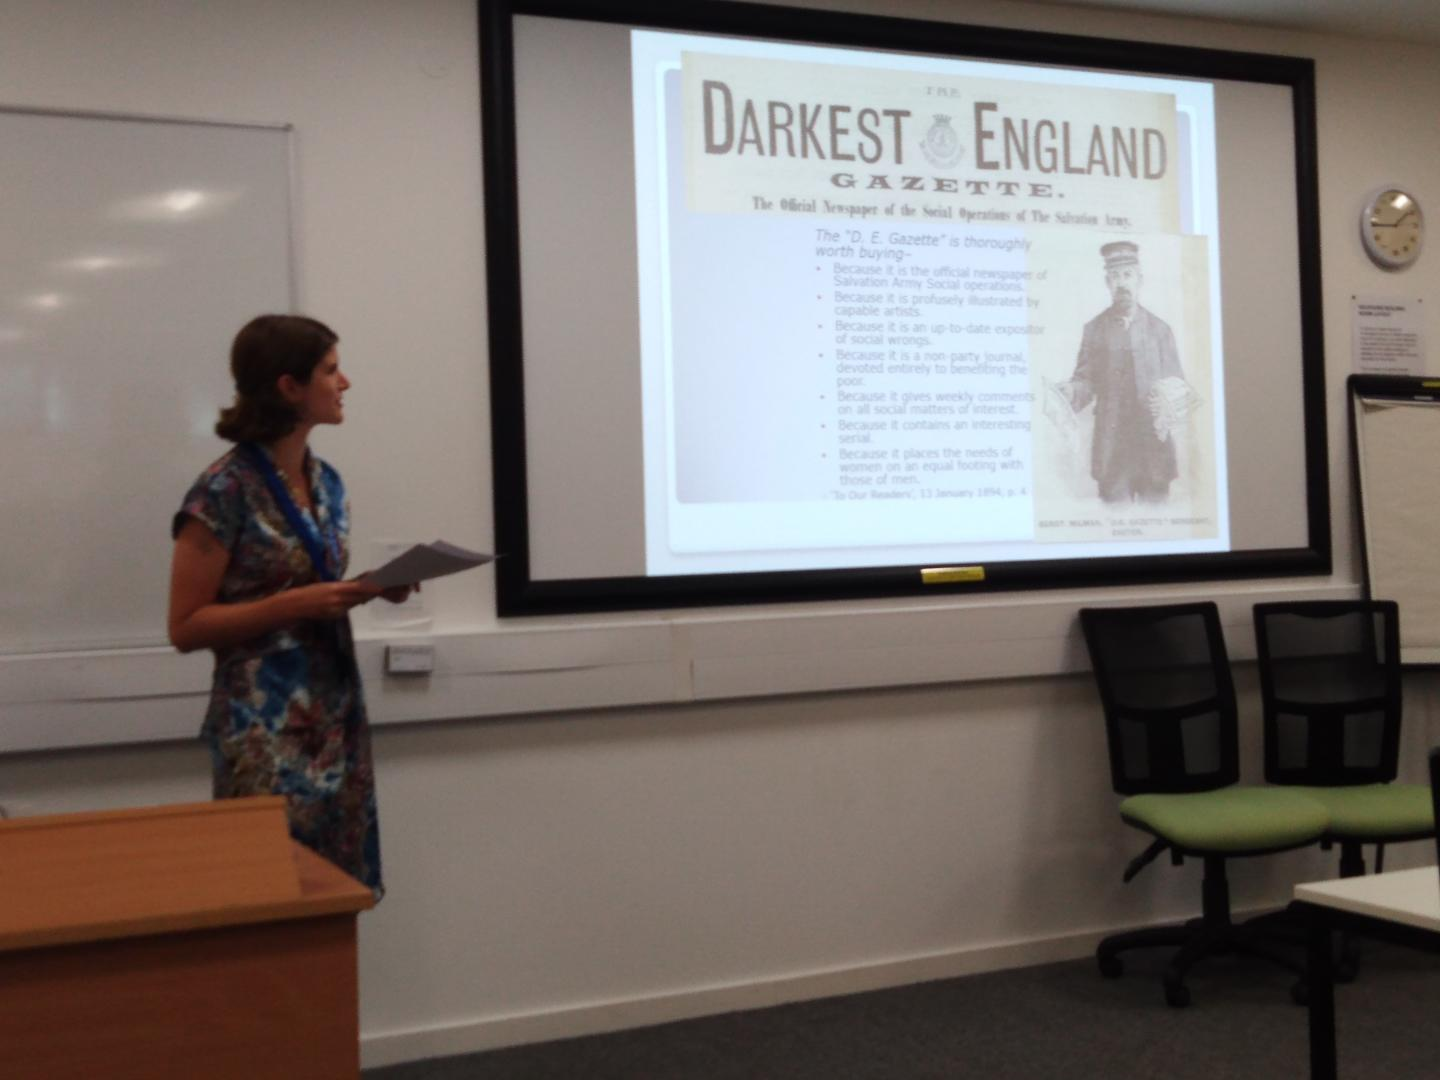 Dr Flore Janssen presenting her paper 'New Approaches to the Salvation Army Social Work: the Digital Darkest England Gazette, 1893-94', BAVS Conference, 2019